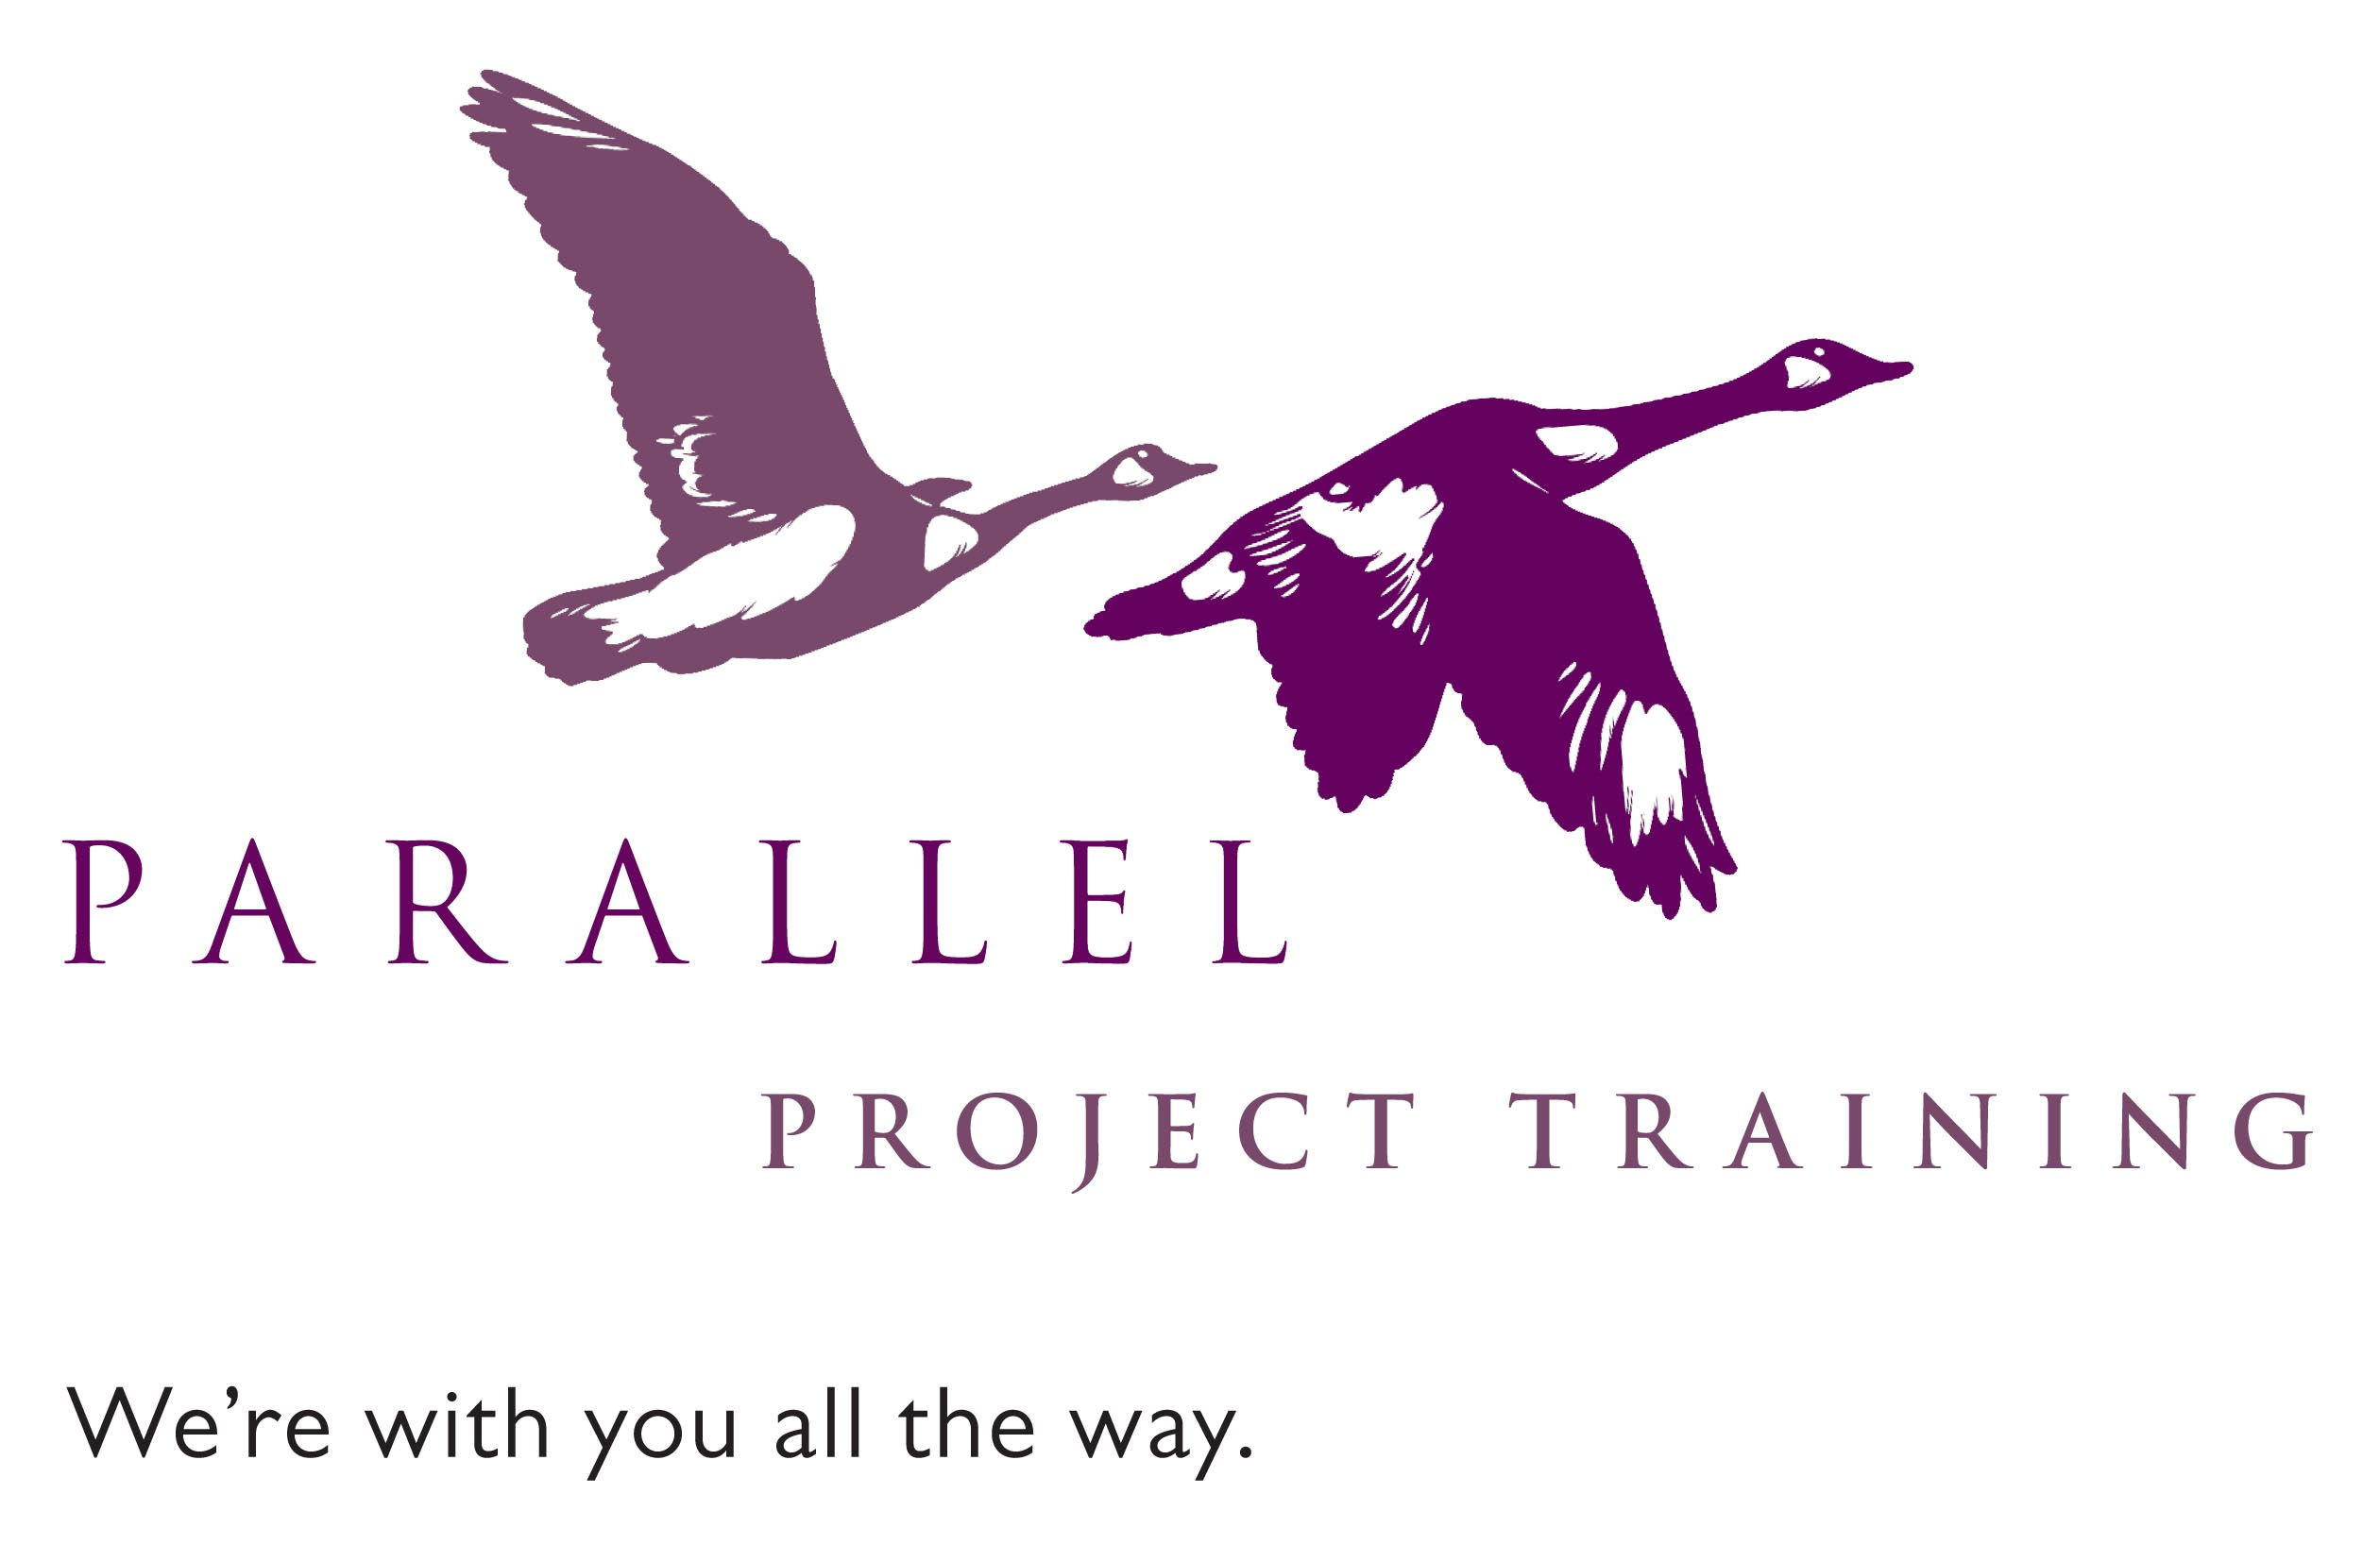 Parallel Project Training